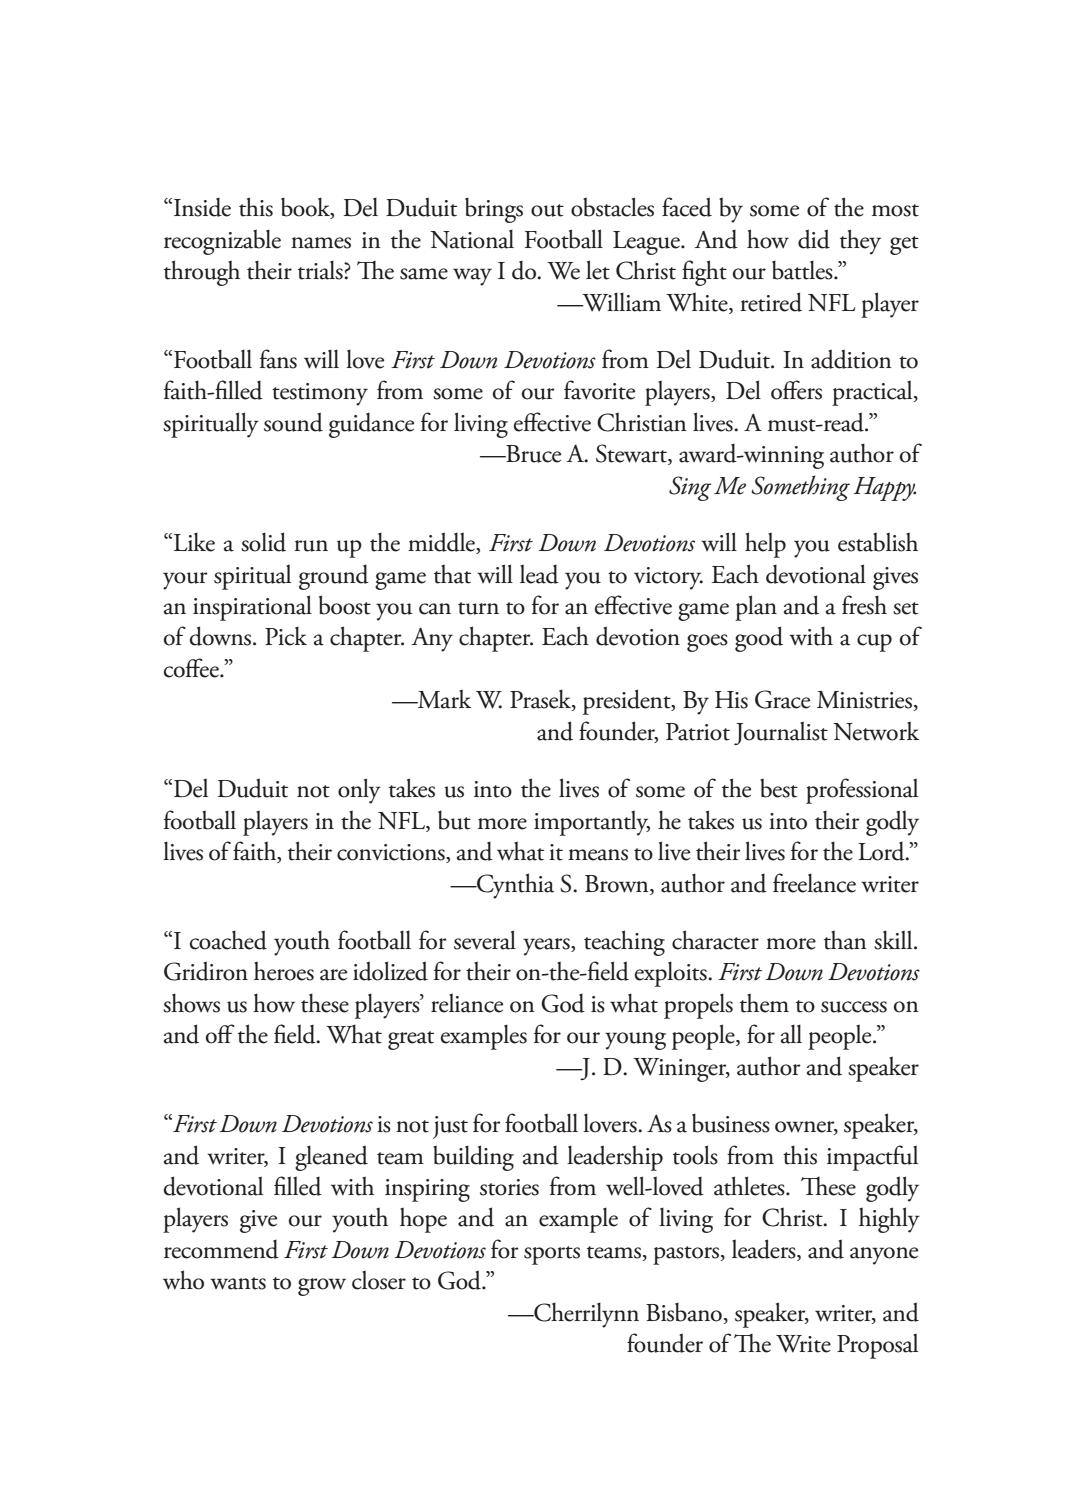 First Down Devotions Sample by Iron Stream Media - issuu